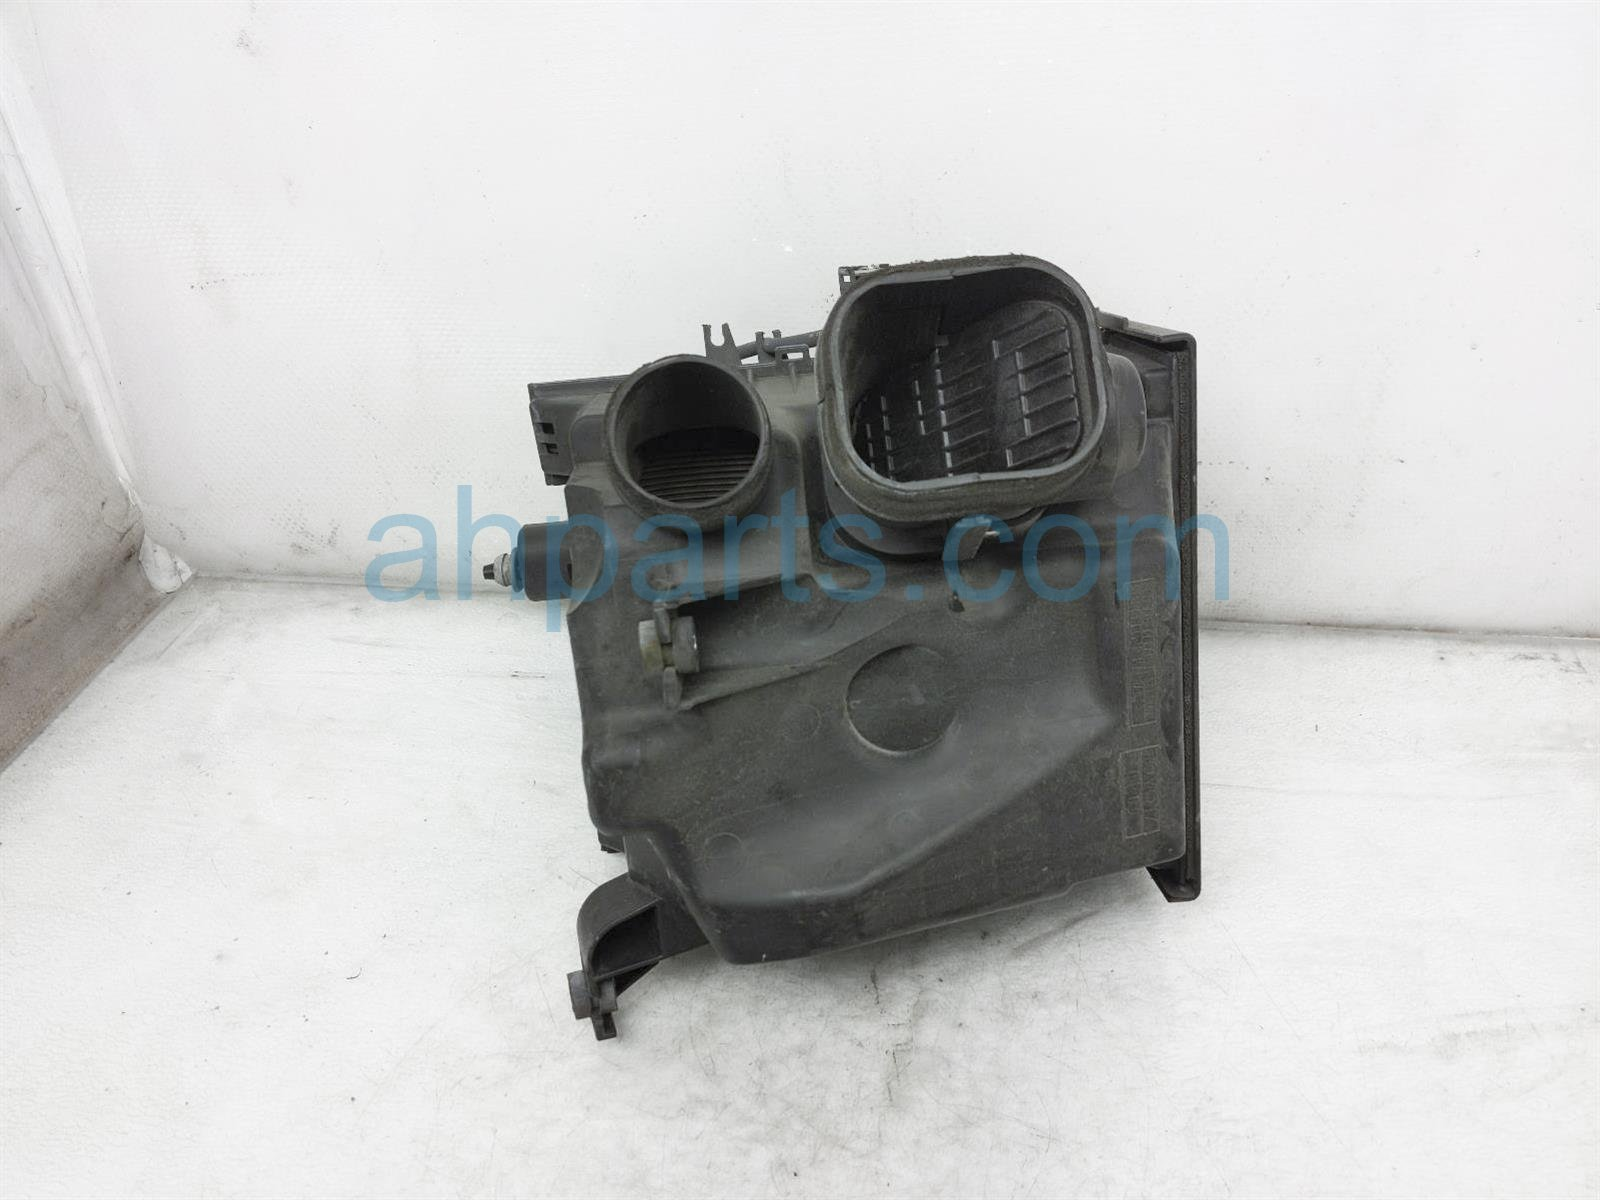 2013 Toyota Sienna Intake Air Cleaner Box Assy 17711 0P024 Replacement